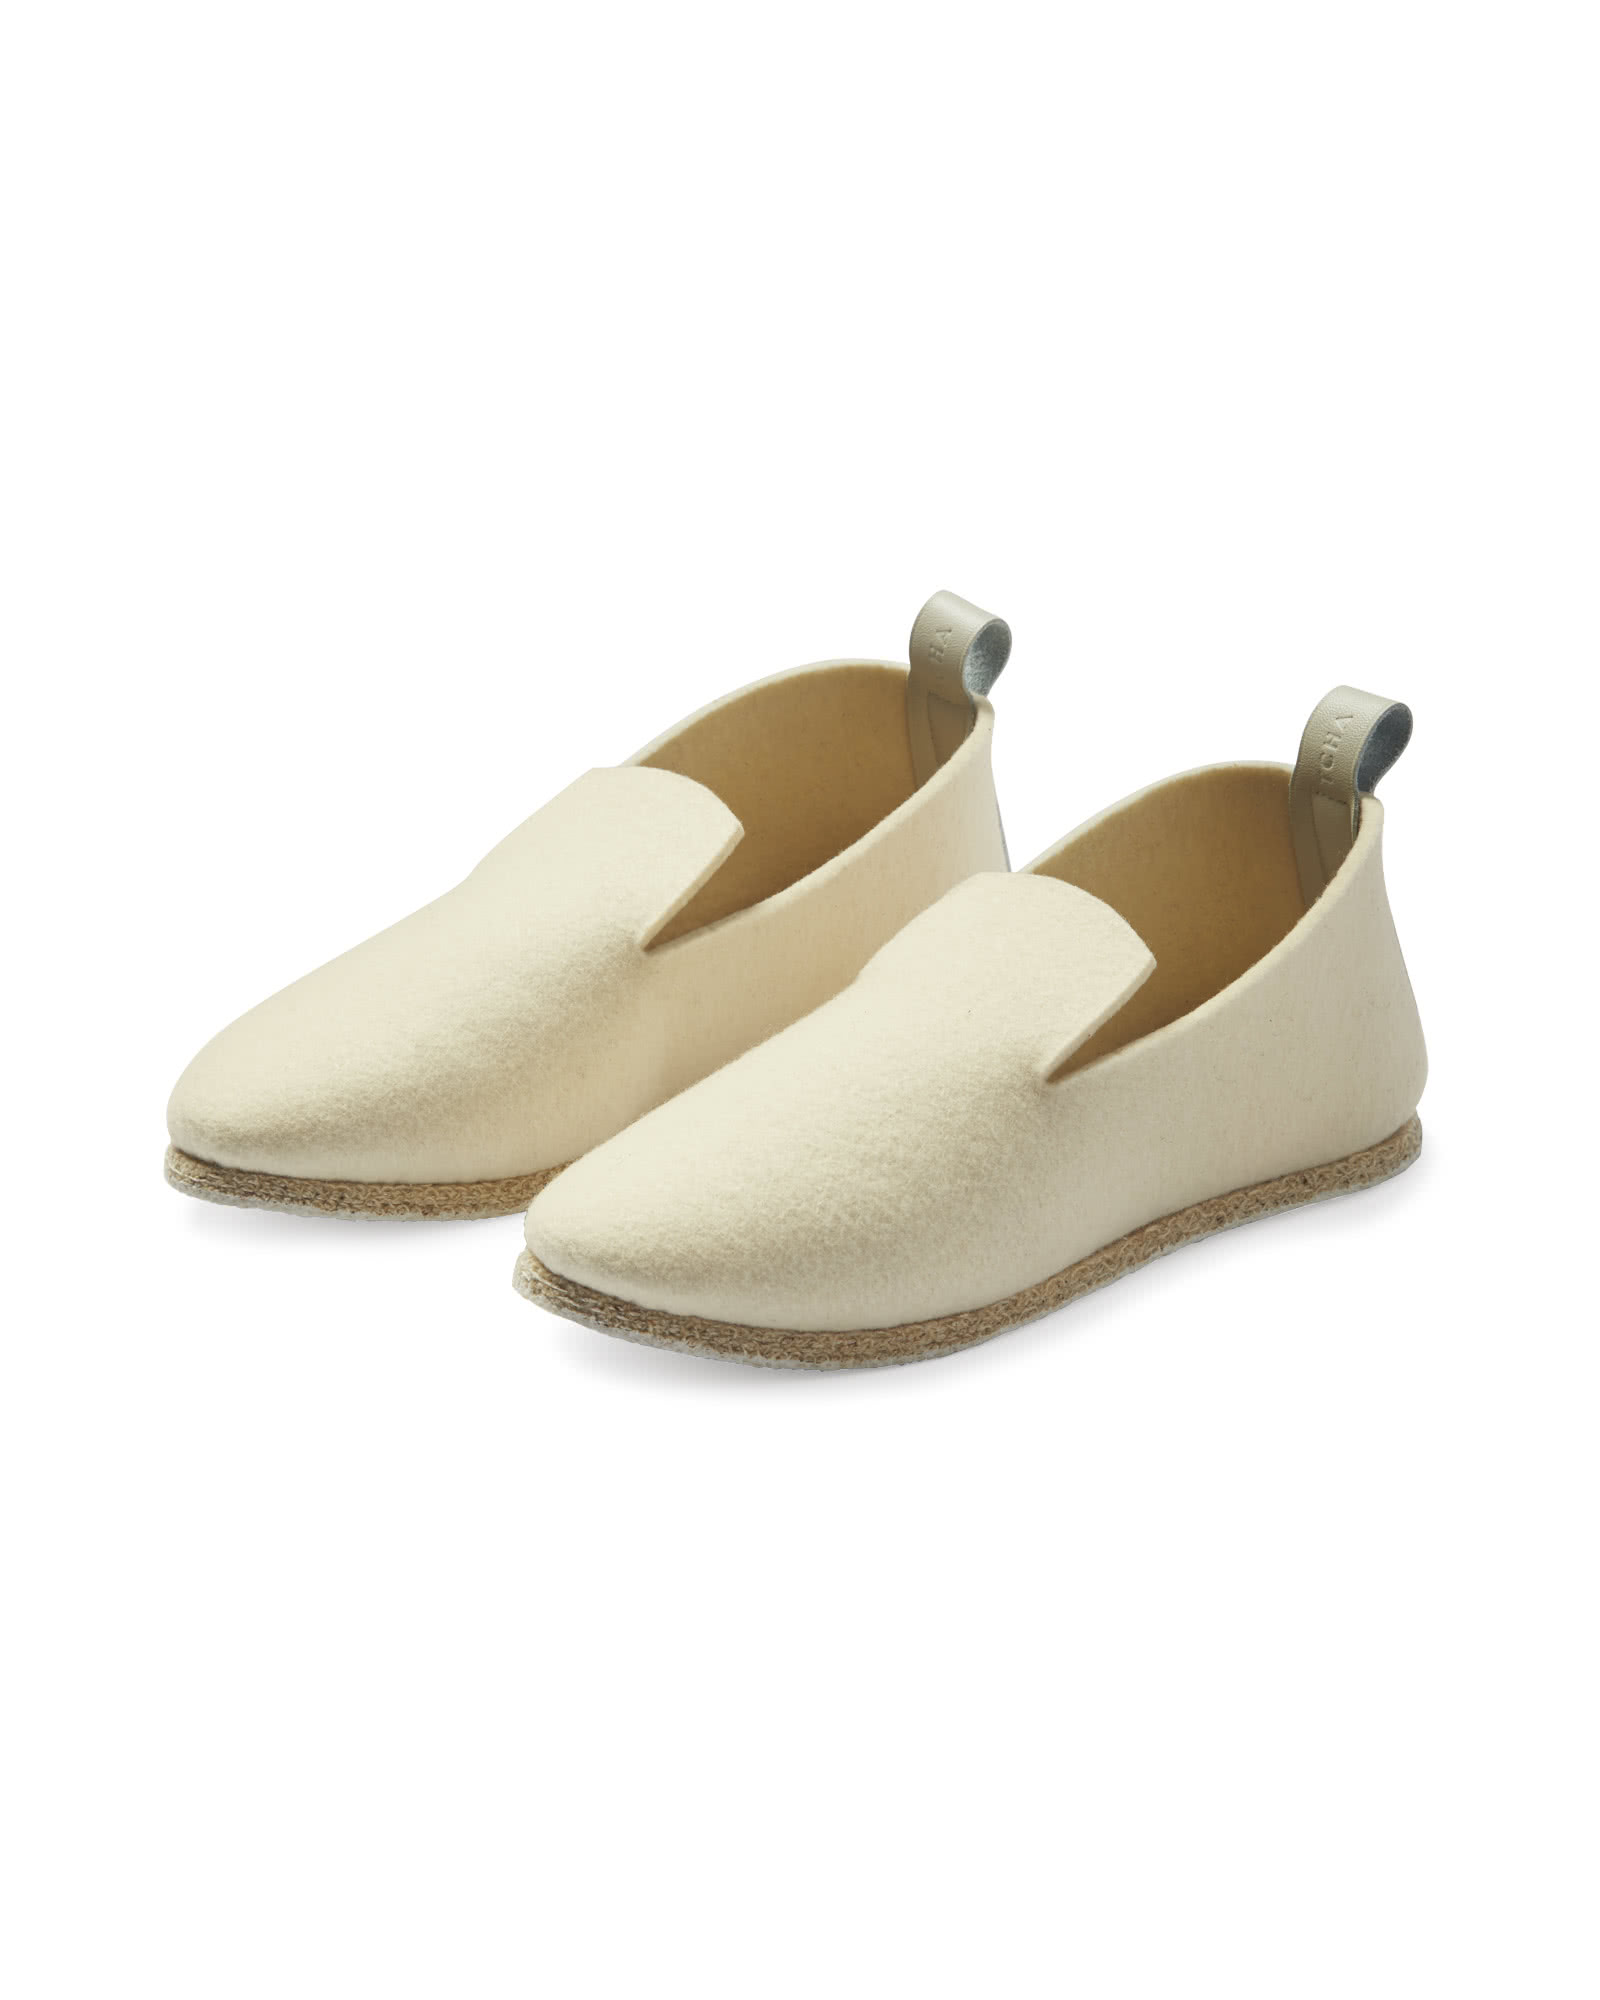 French Felt Slippers, Cream